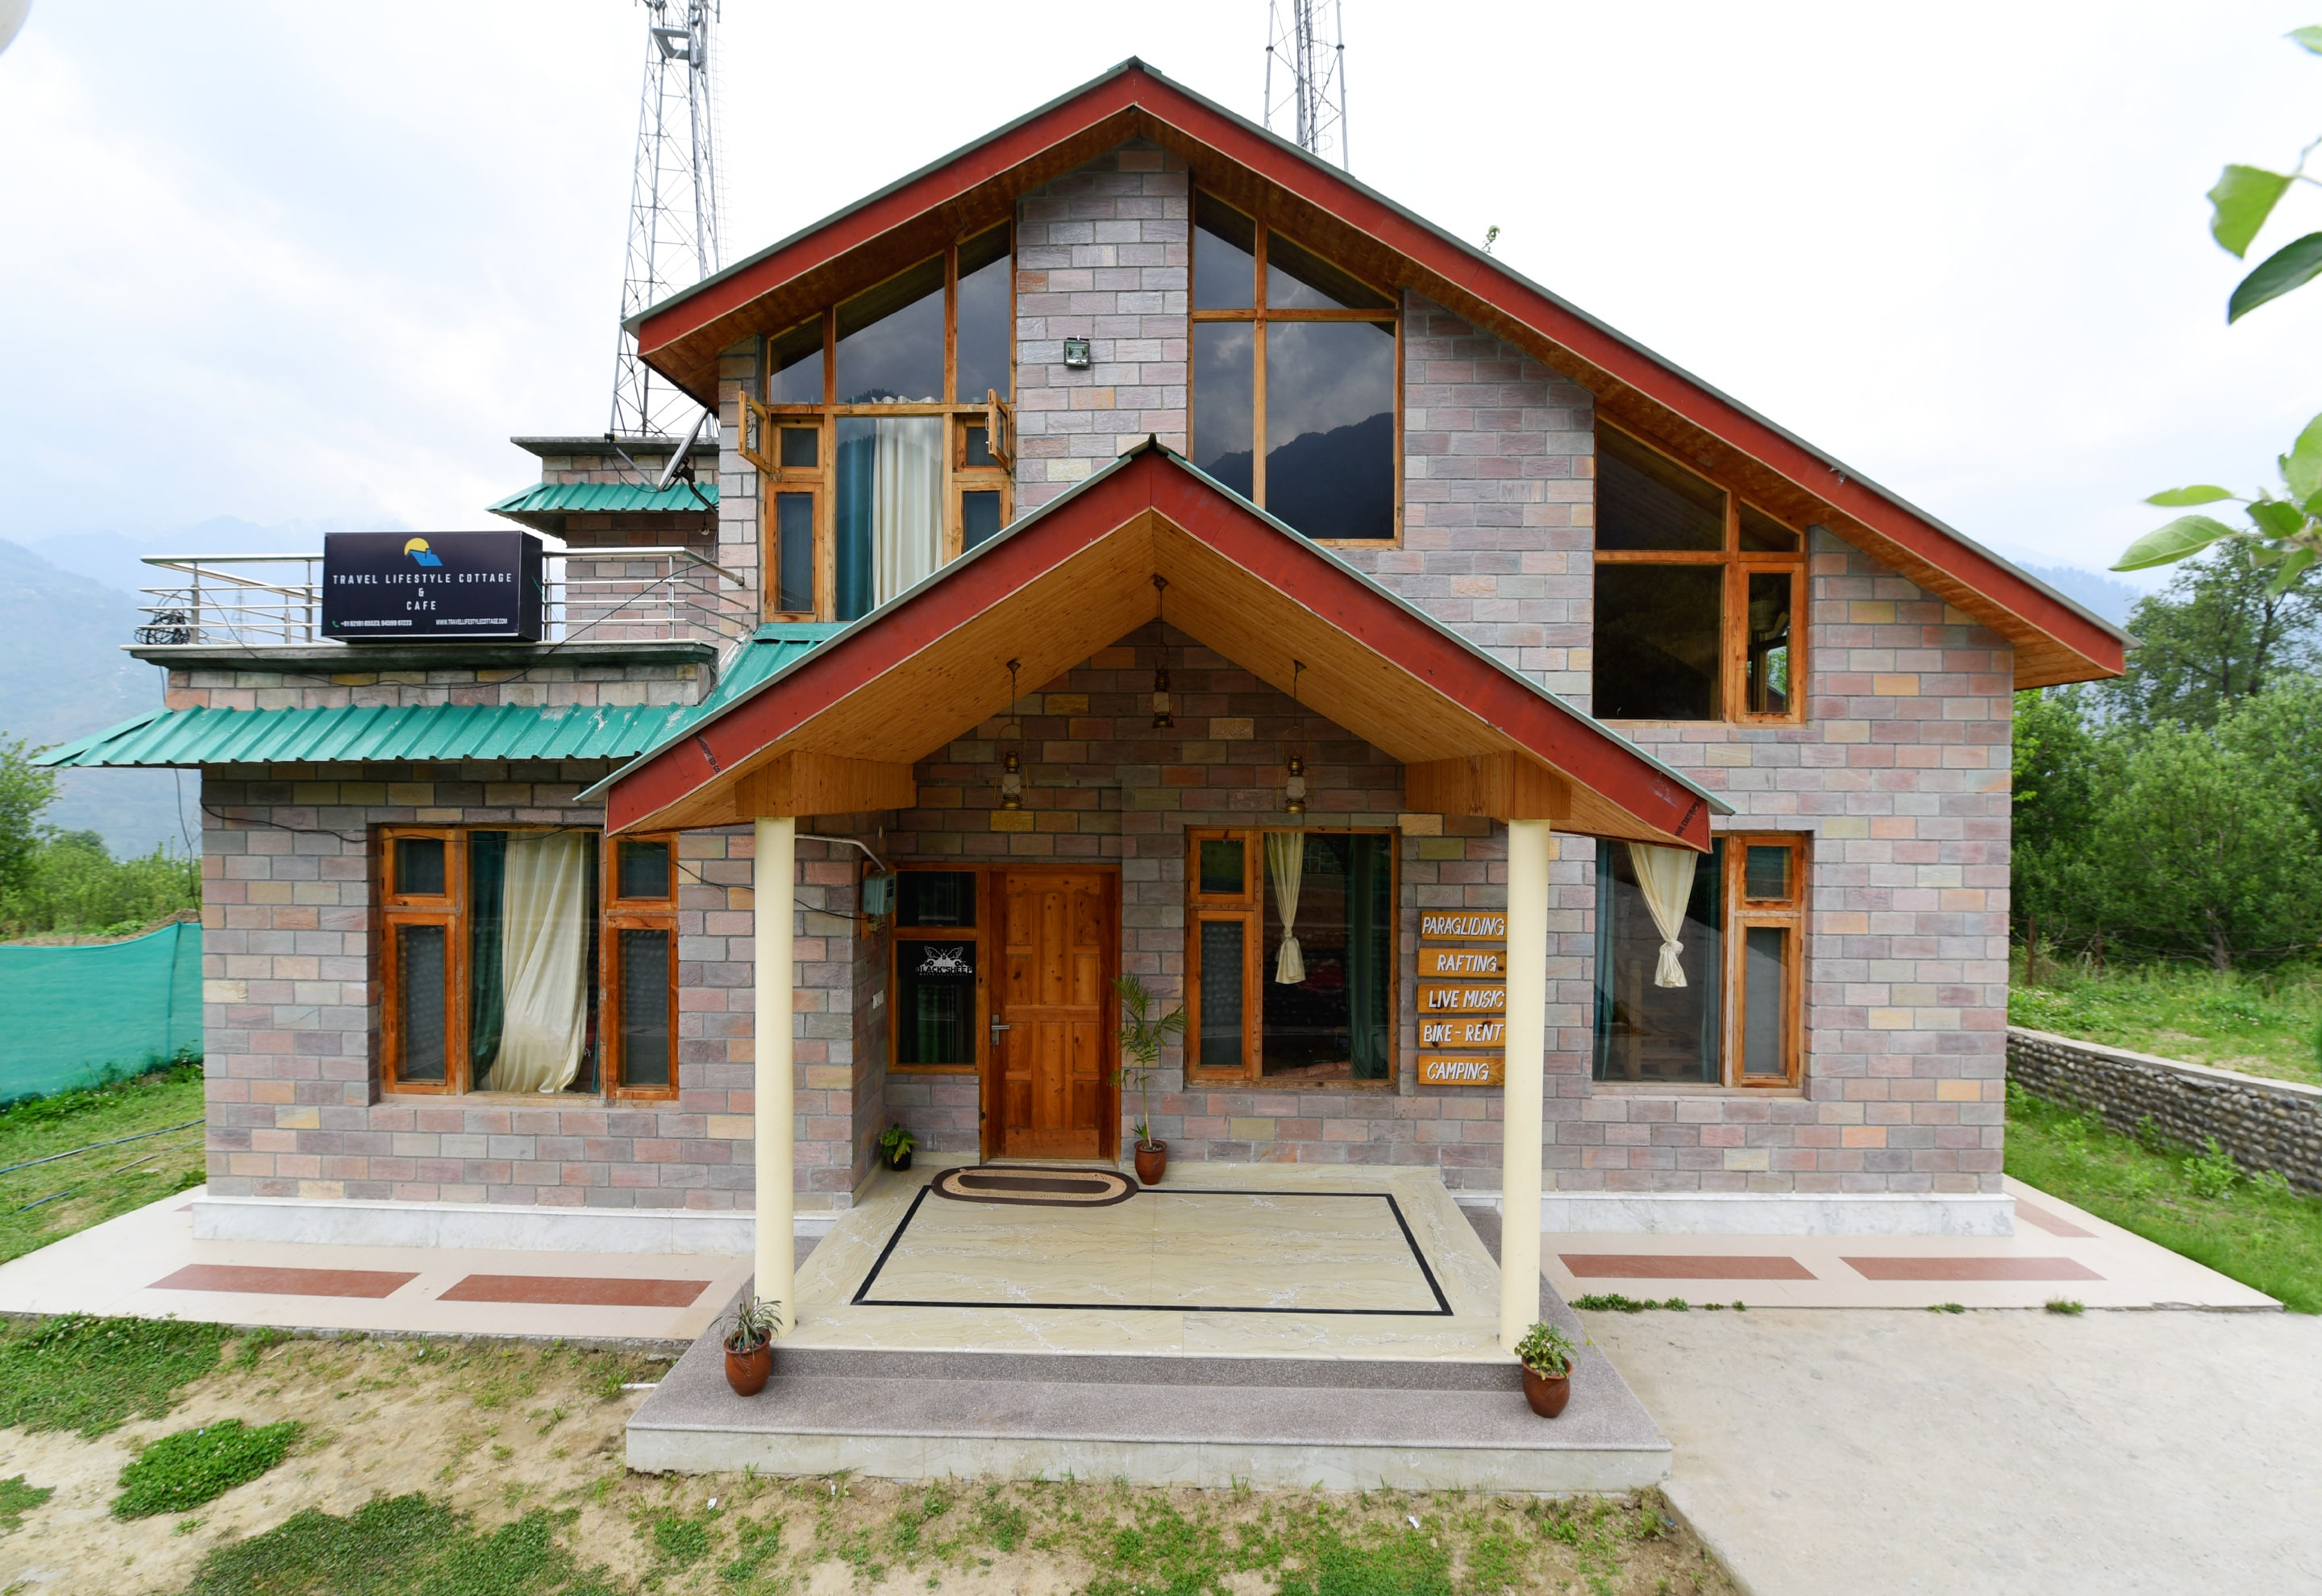 Book OYO 14303 Home Farm View 4BHK Naggar Road in Manali